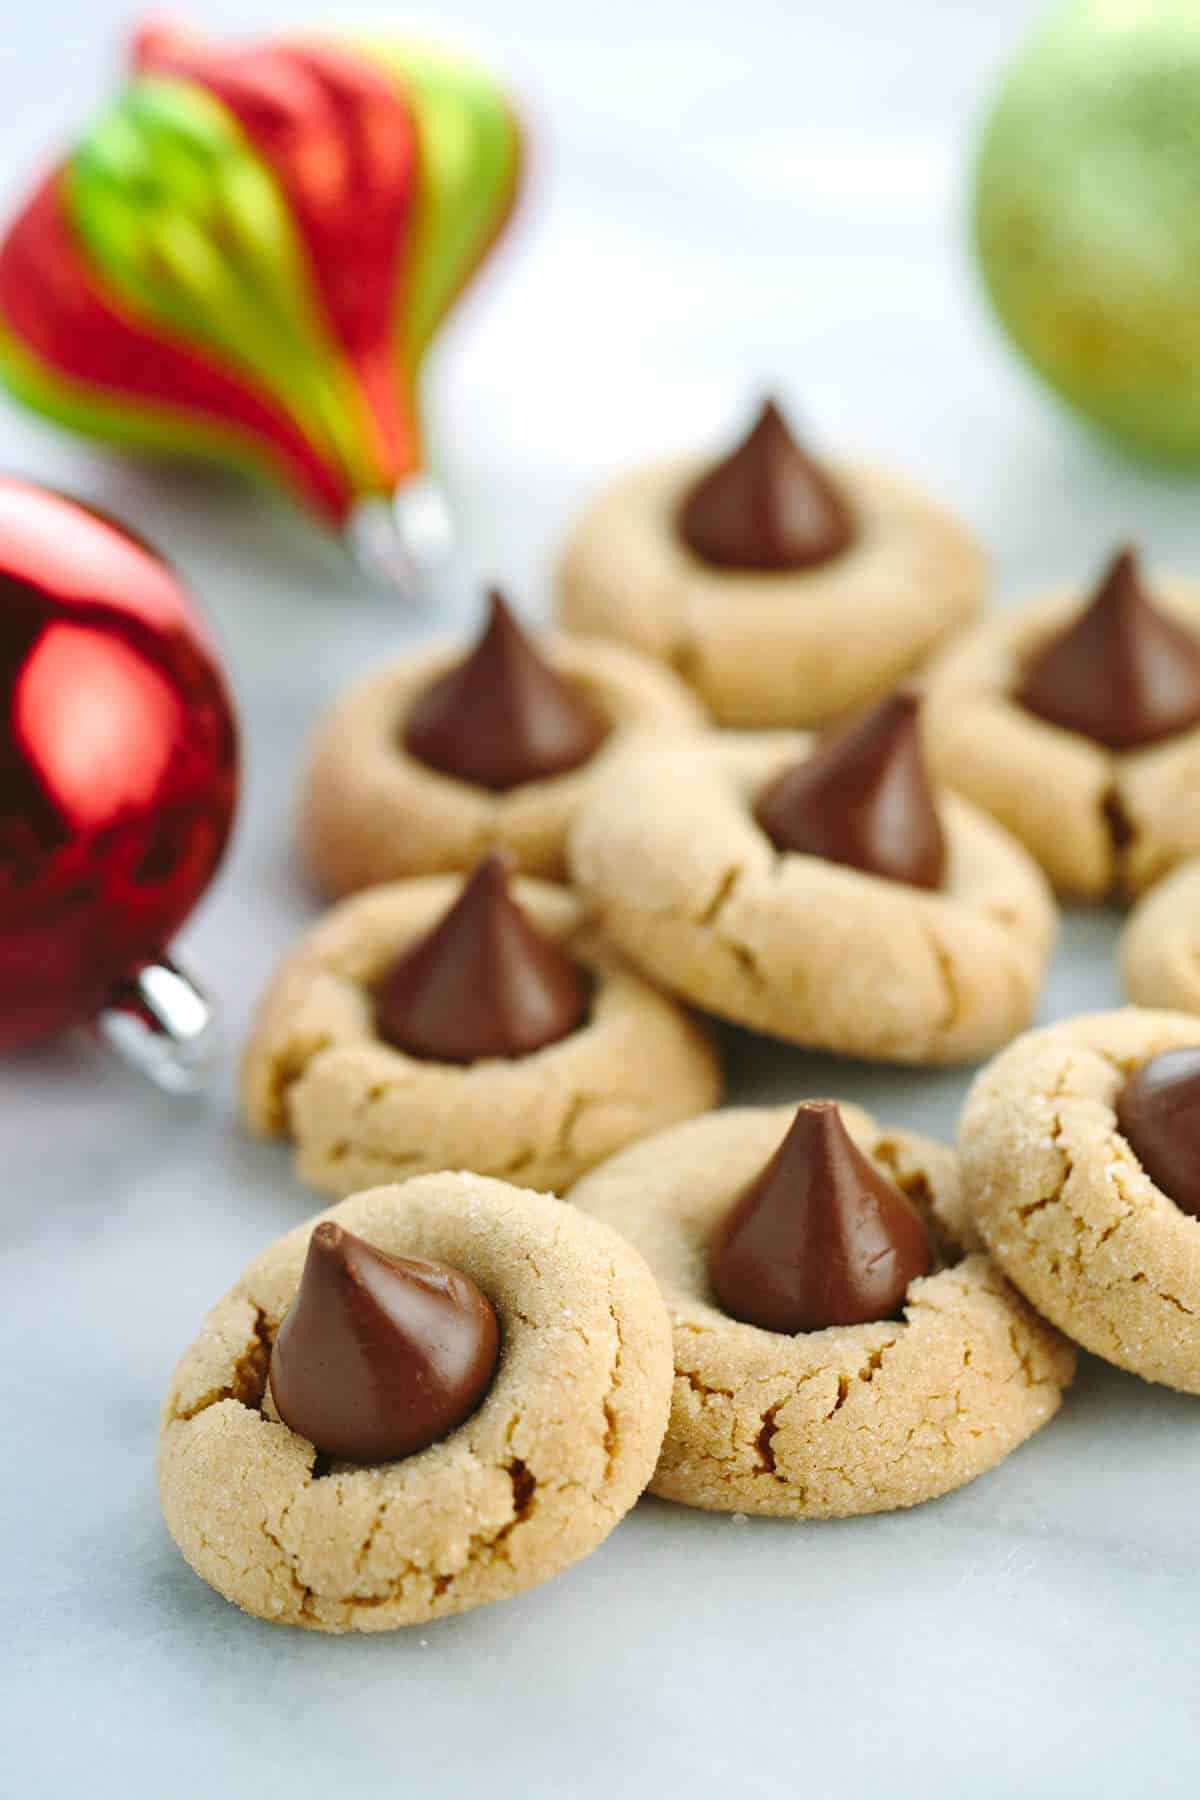 Classic Peanut Butter Kiss Cookies - a classic holiday tradition that everyone loves. Creamy peanut butter cookies are made special with milk Hershey's chocolate center. | jessicagavin.com